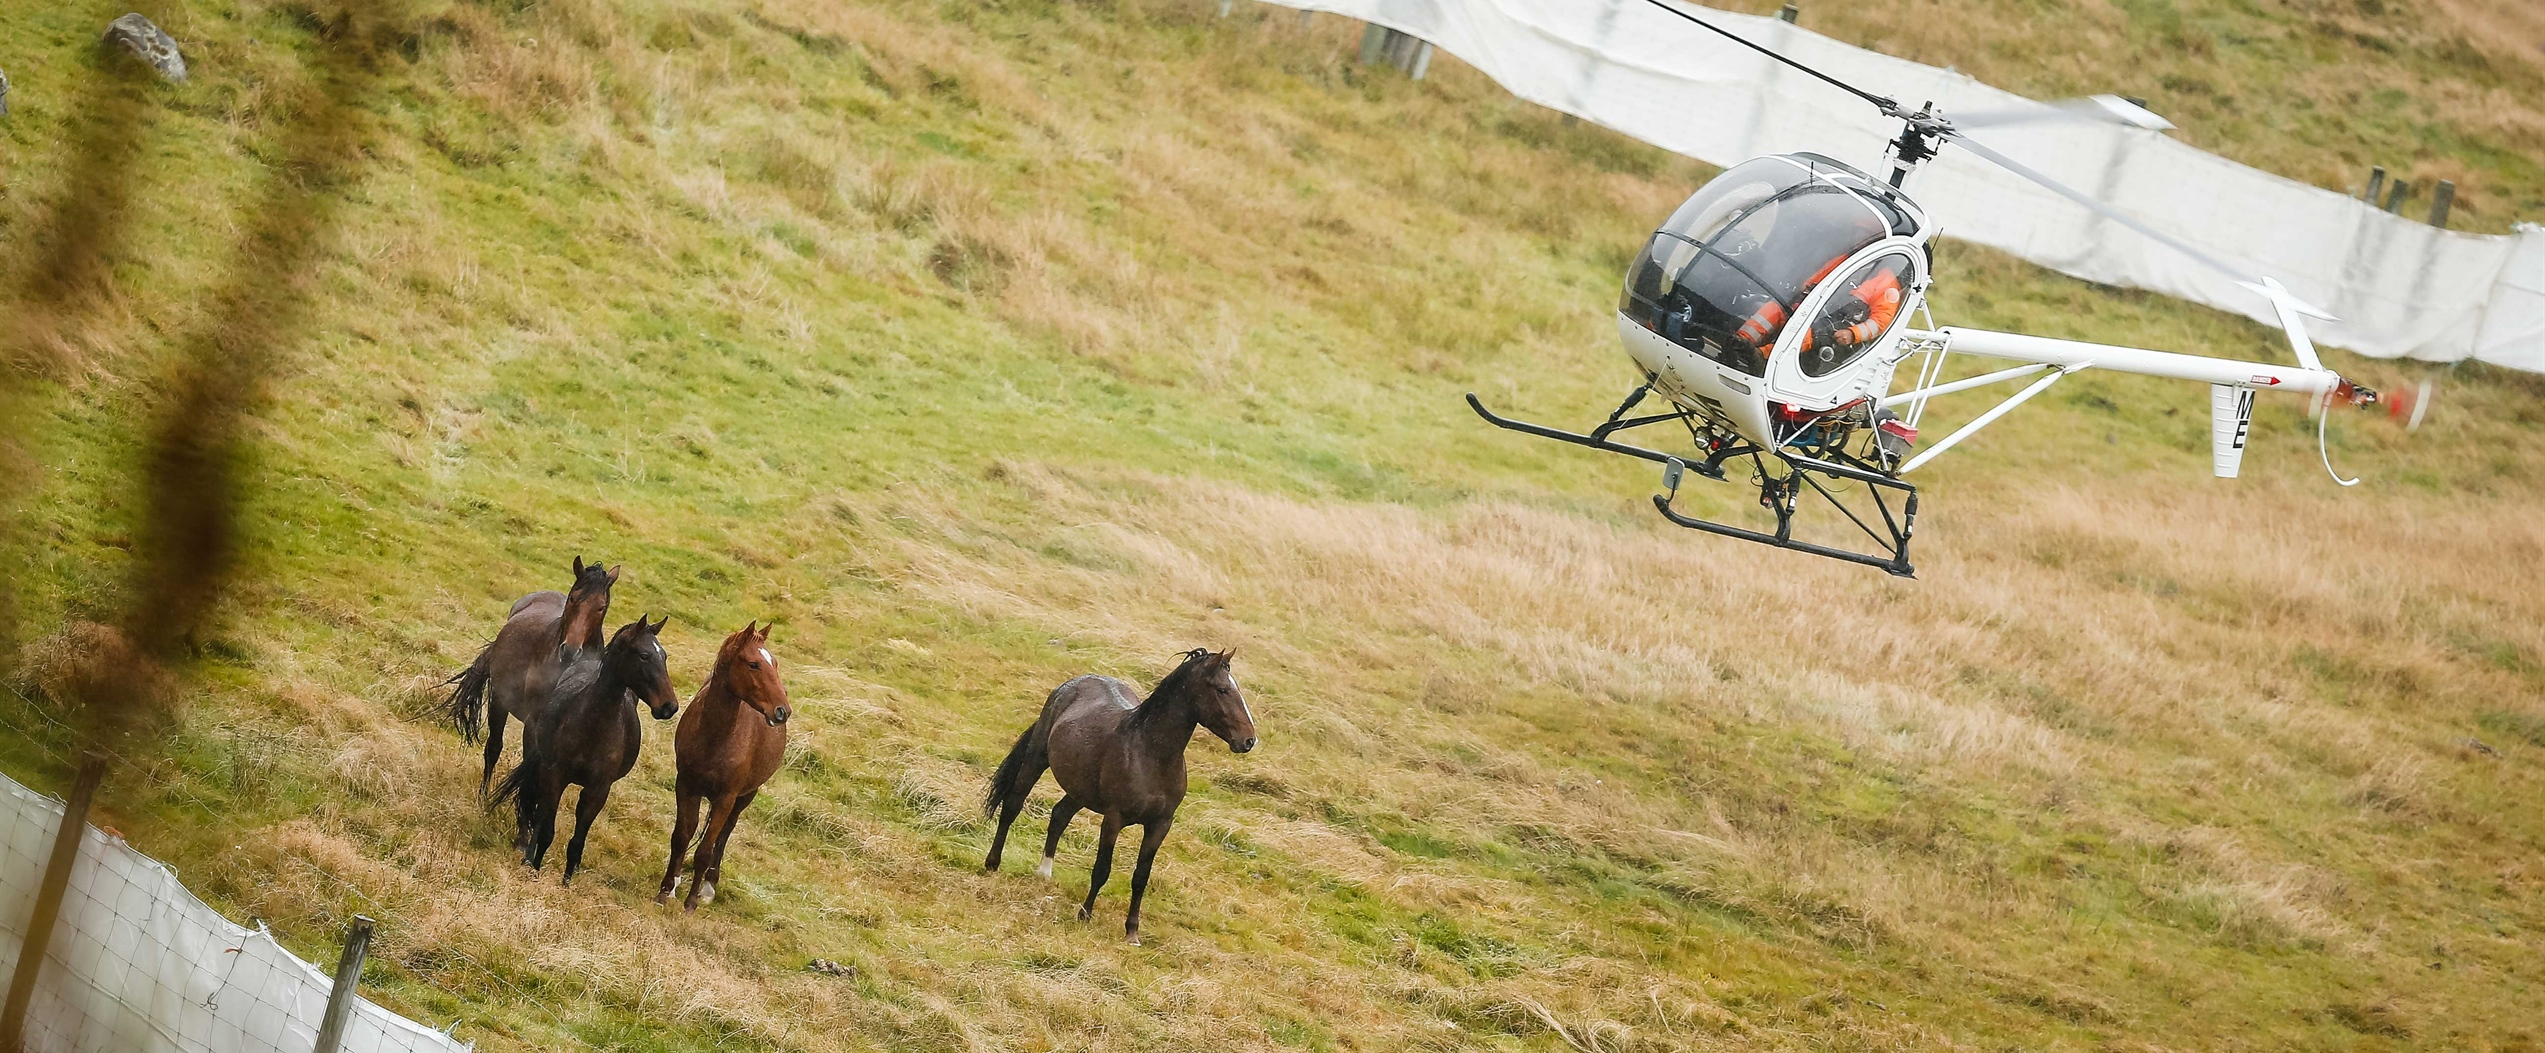 The heartbreak of Watching Helicopters Round Up New Zealand's Wild Horses